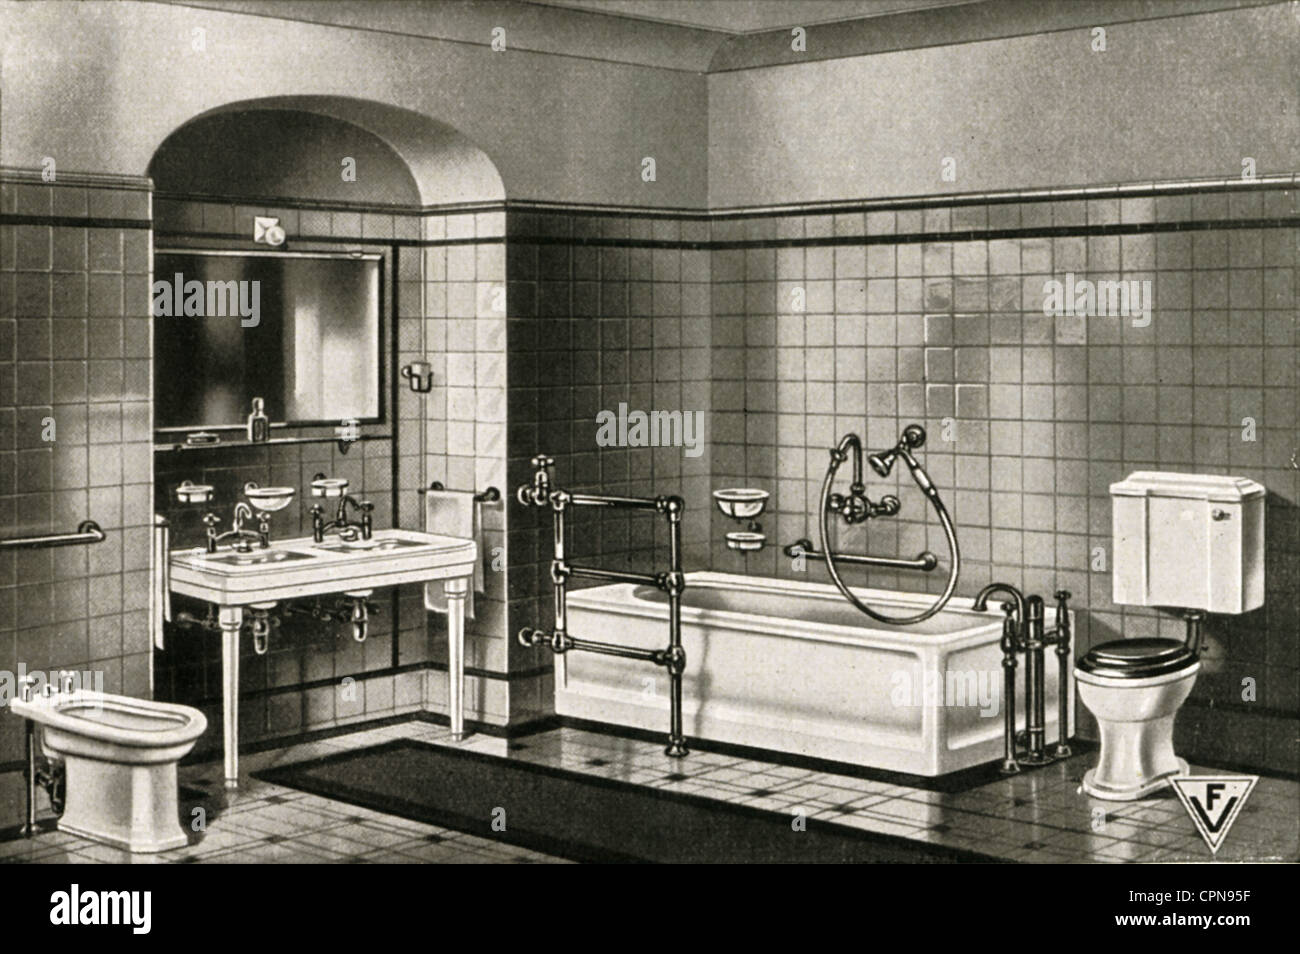 furnishings, bathroom, complete furnishings in a sample exhibition, sanitary furnishings by Robert Kutscher Company, Stock Photo